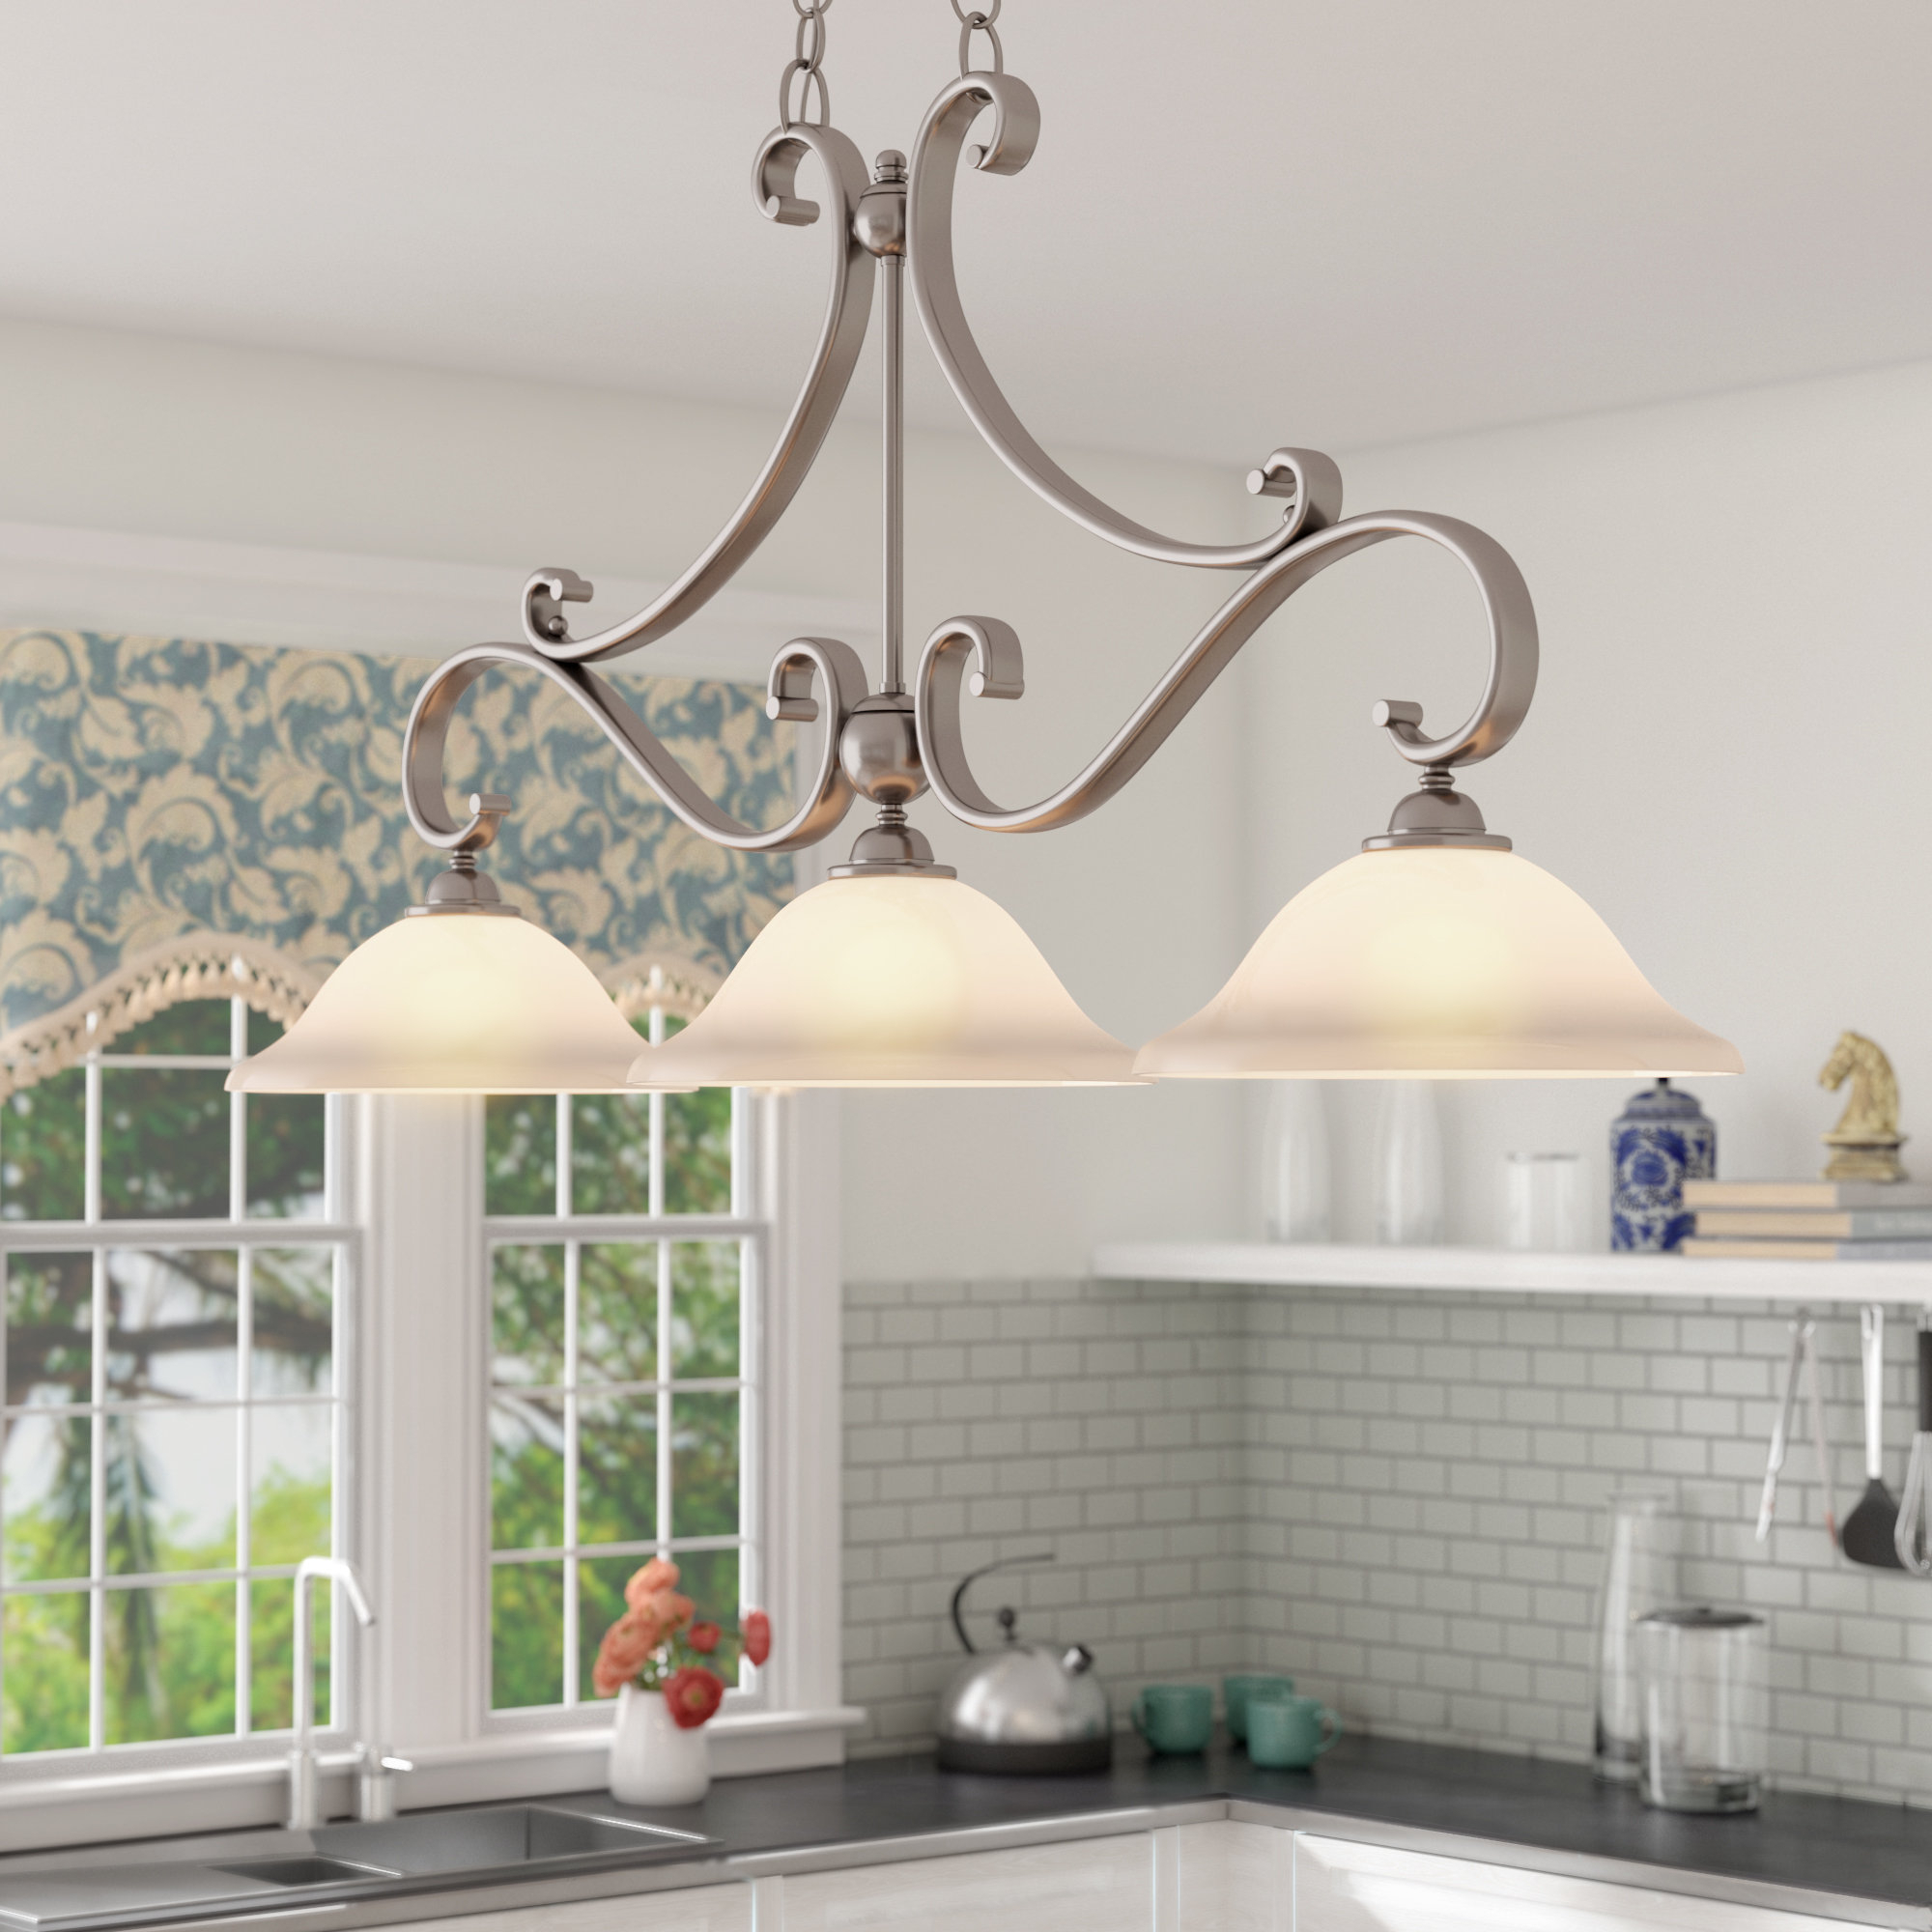 Charlton Home Pendant Lighting You'll Love In 2019 | Wayfair With Rockland 4 Light Geometric Pendants (View 20 of 30)